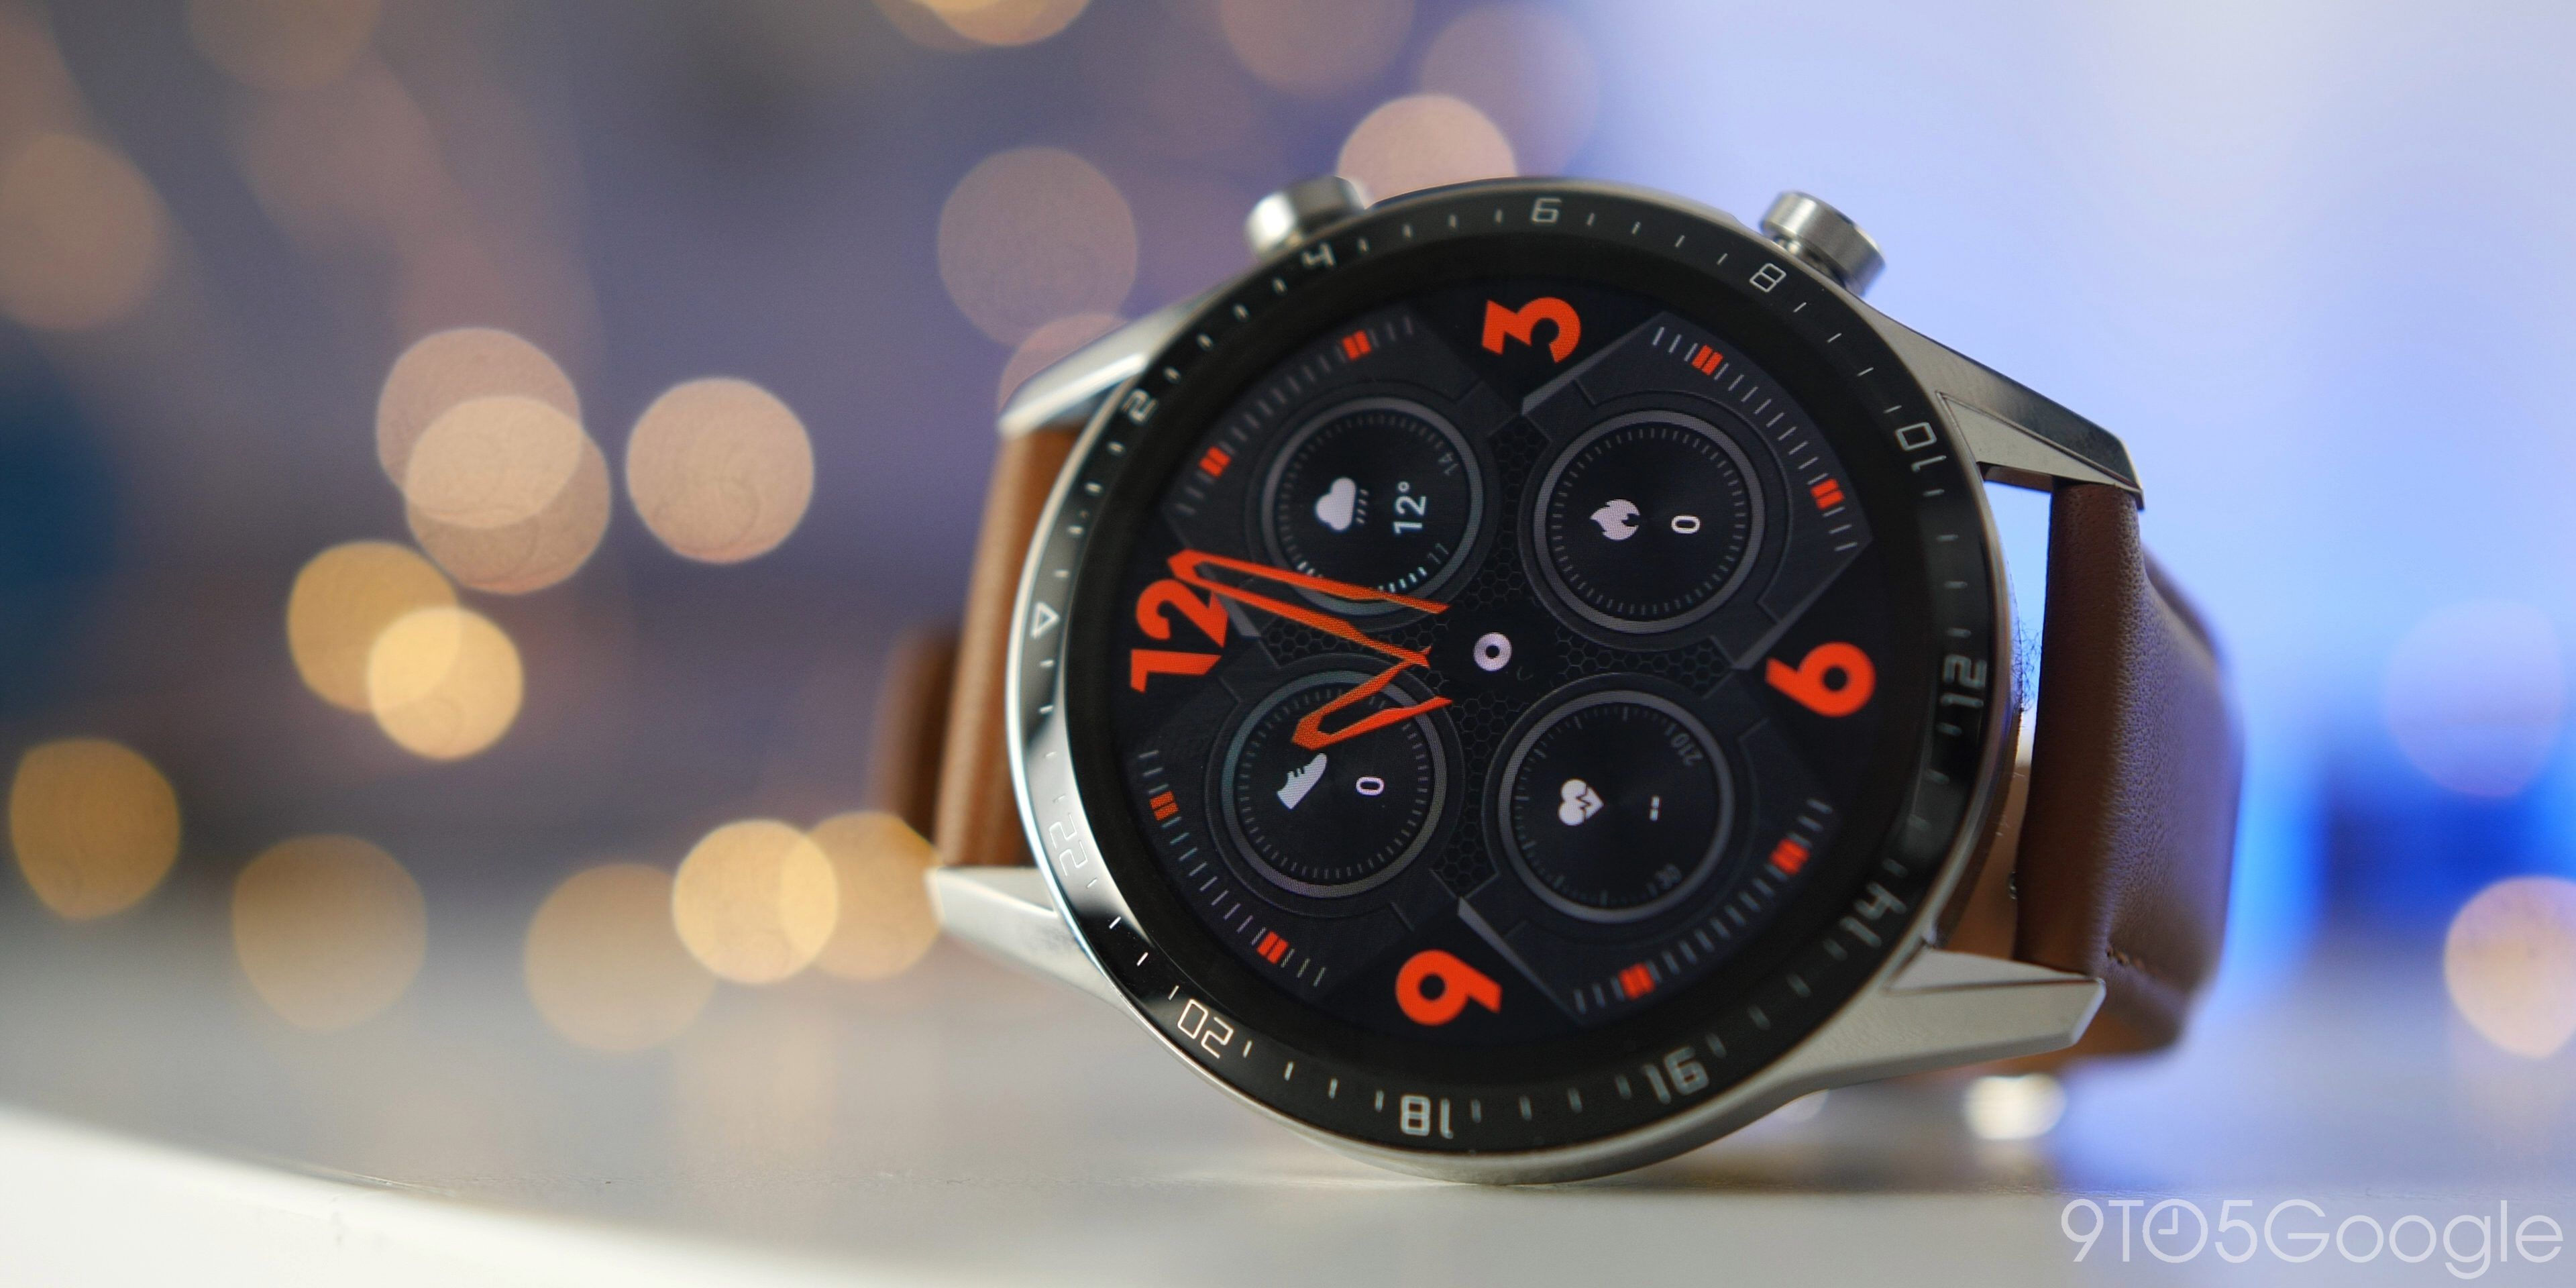 Huawei Watch Gt 2 Review Easily The Best Not So Smart Smartwatch Video Huawei Watch Smart Watch Huawei